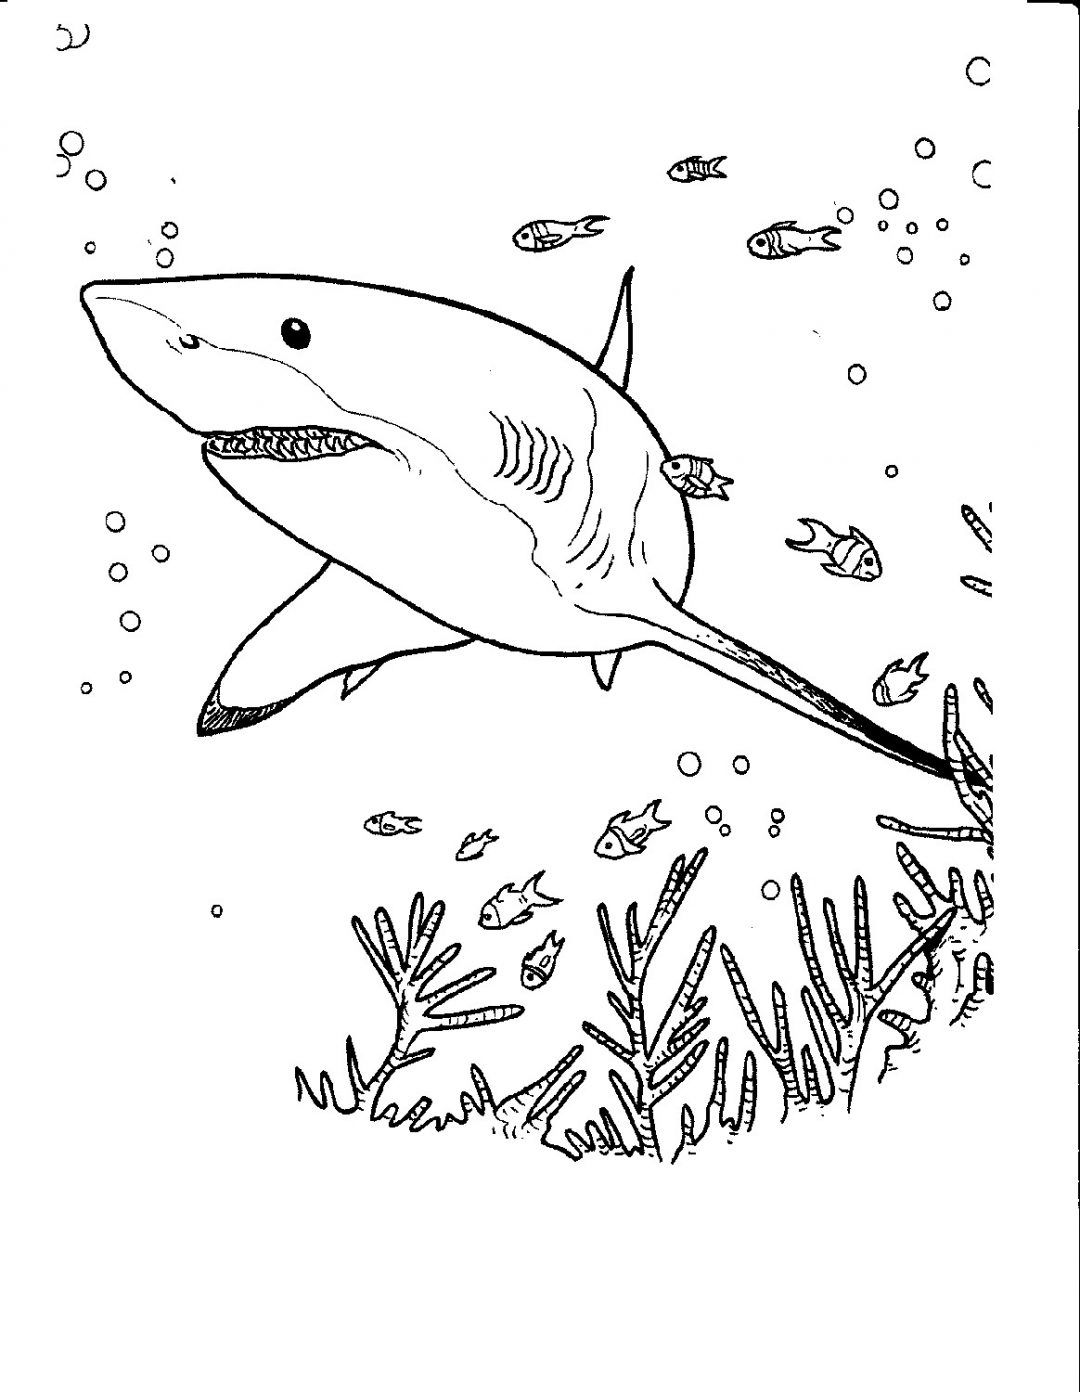 Shark Coloring Pages Vector Shark Coloring Pages Great White